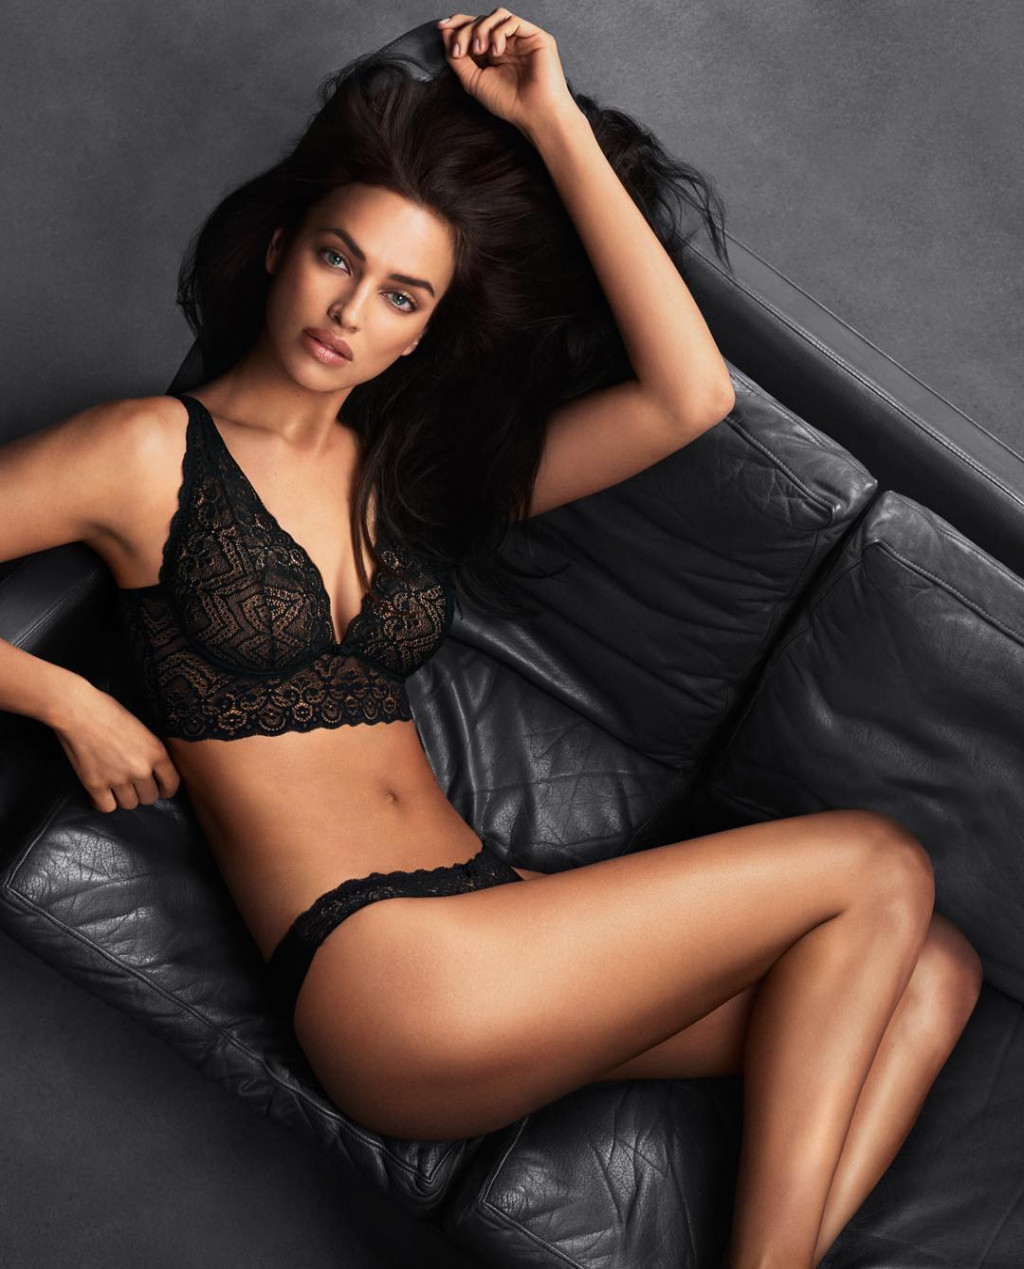 Irina Shayk Hot Black Underwear Pic - Irina Shayk Hot Black Underwear Pic